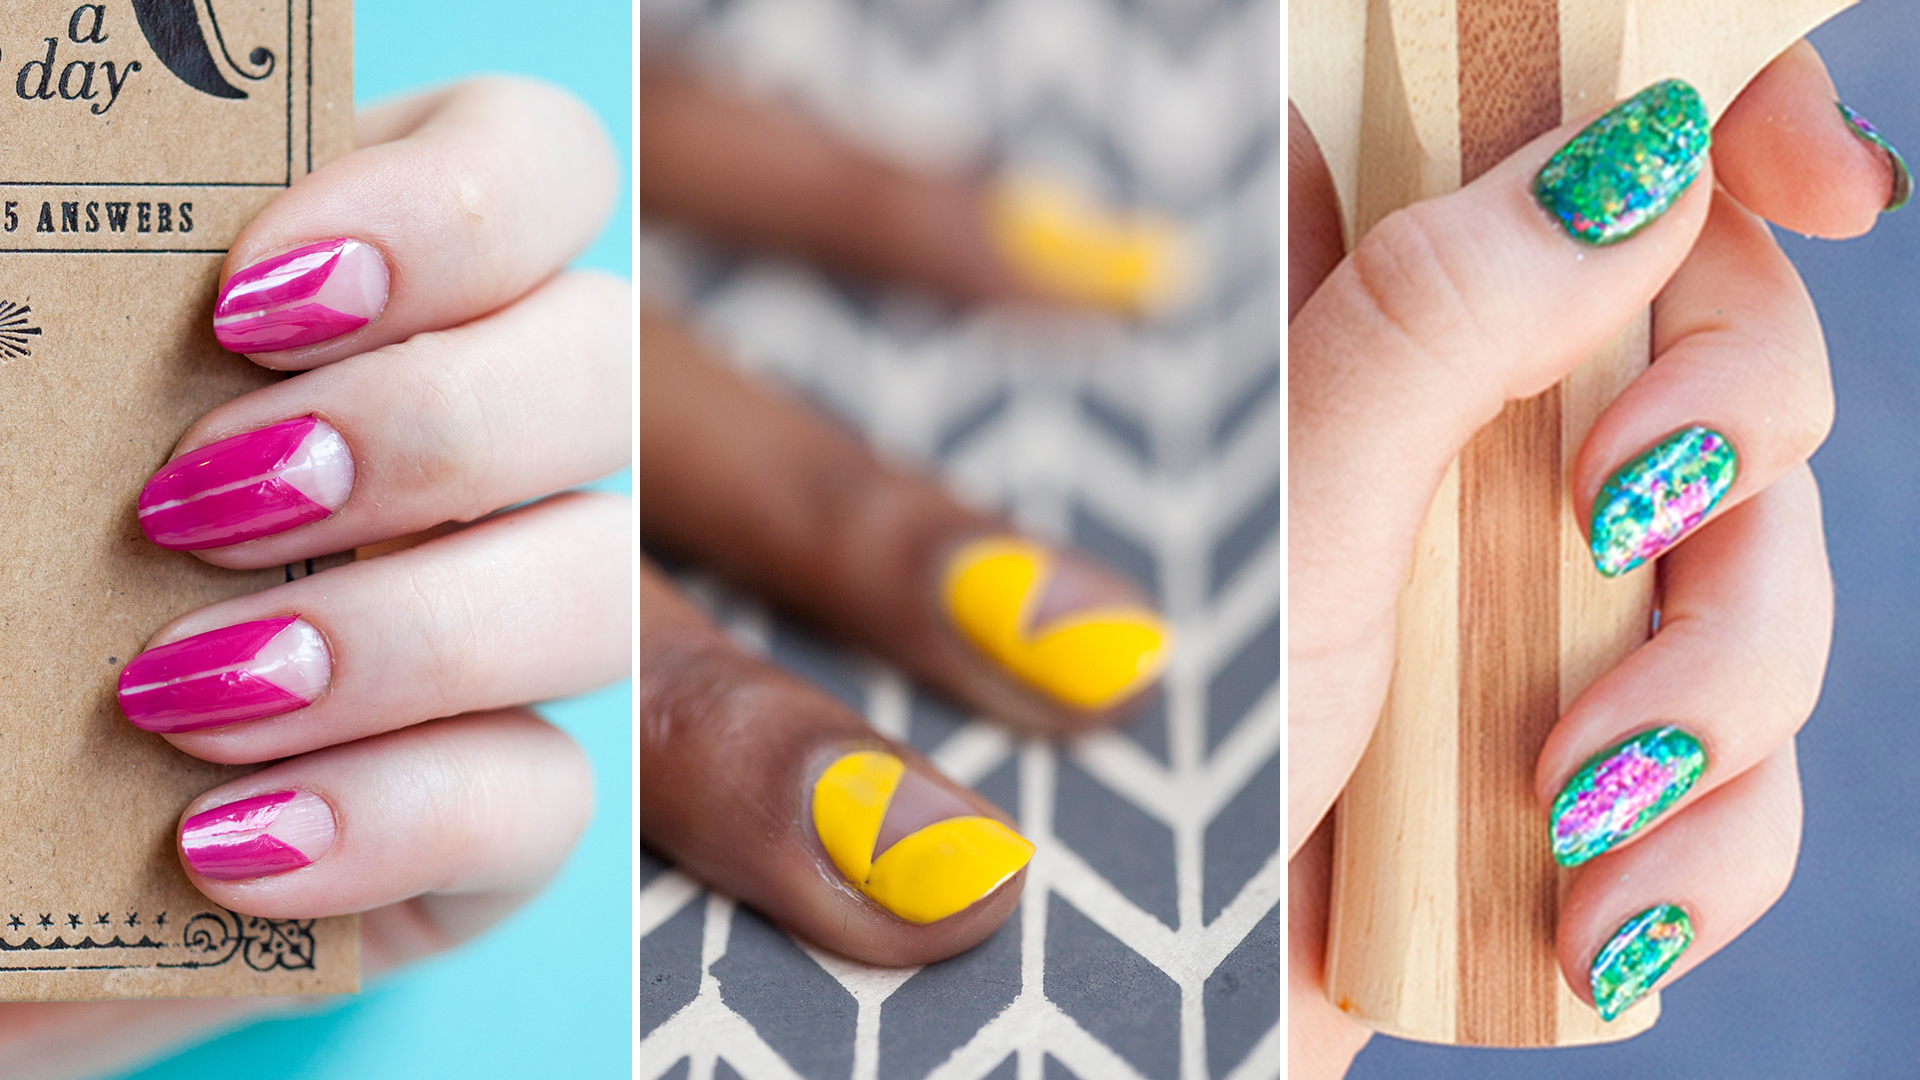 Nail art 2017: Trends, tutorials, tips to try now